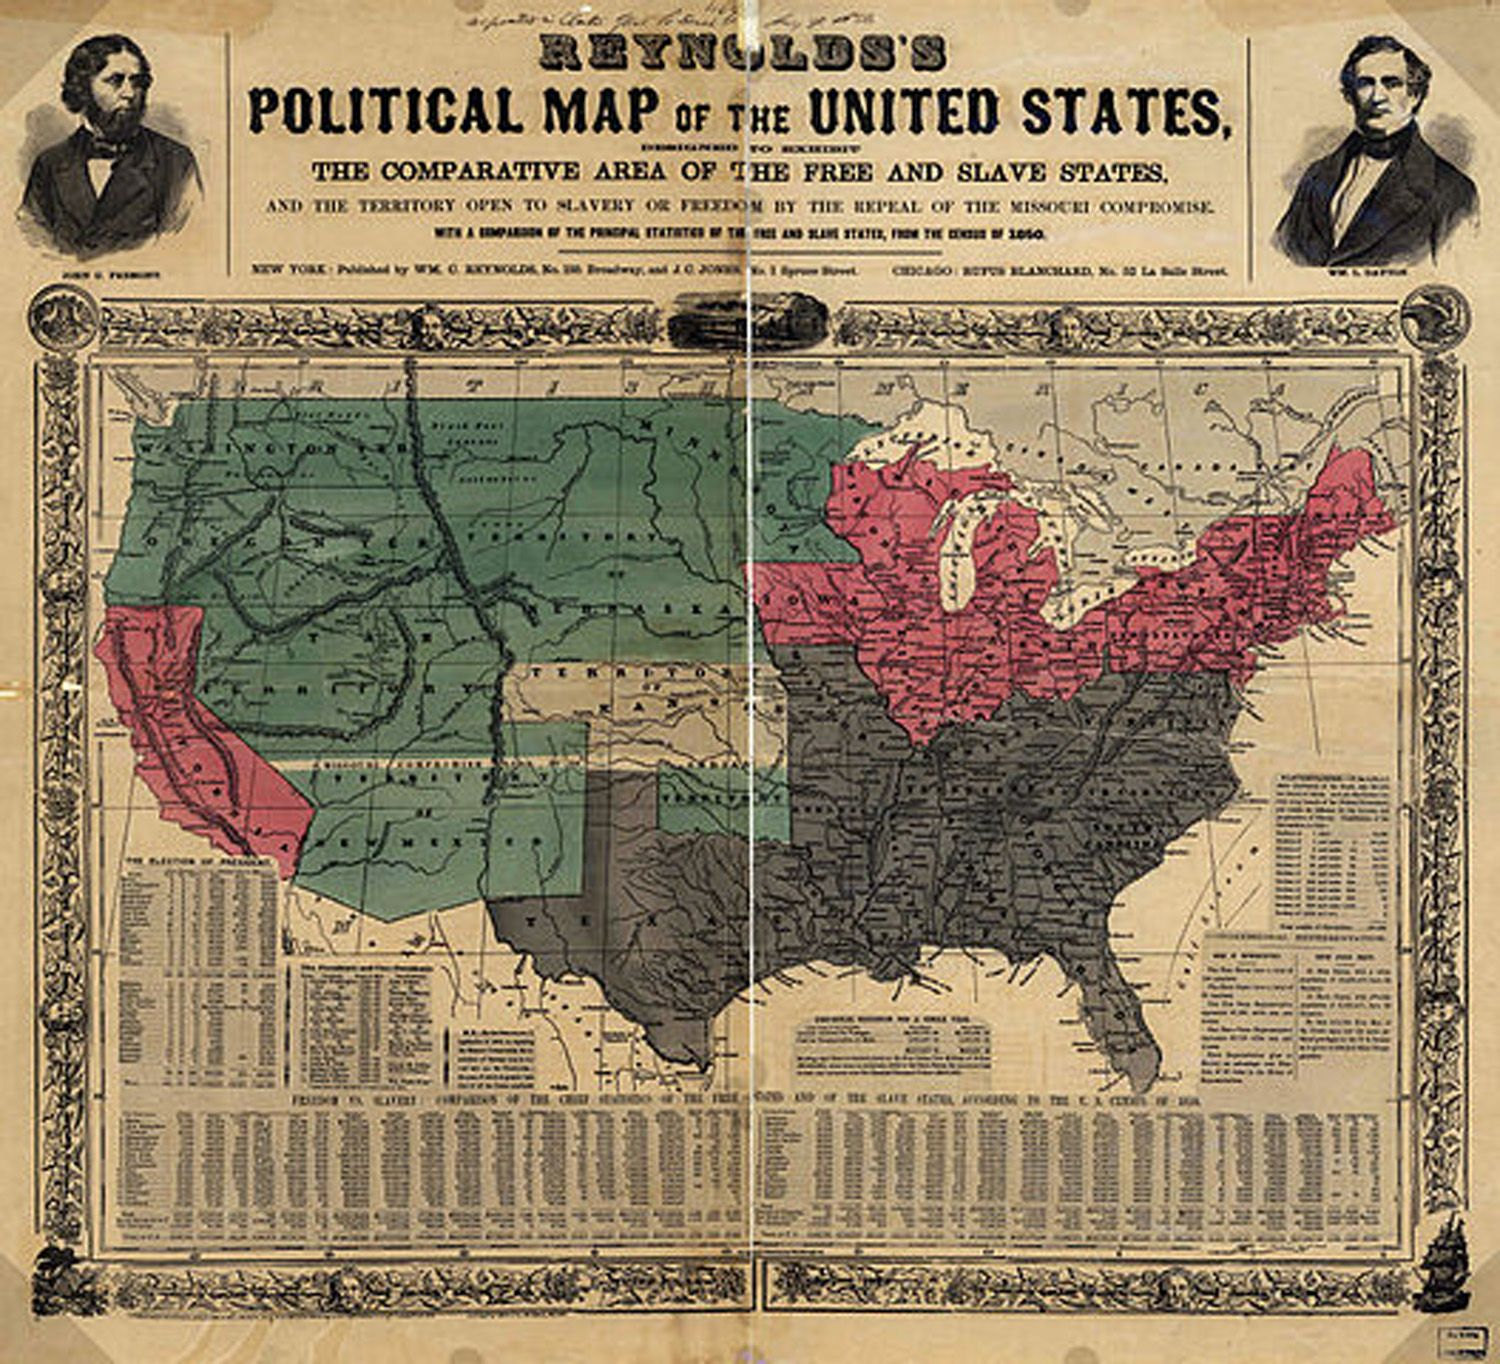 Geographical Trivia Fun Facts AllAmerican Trivia - Missouri compromise interactive map